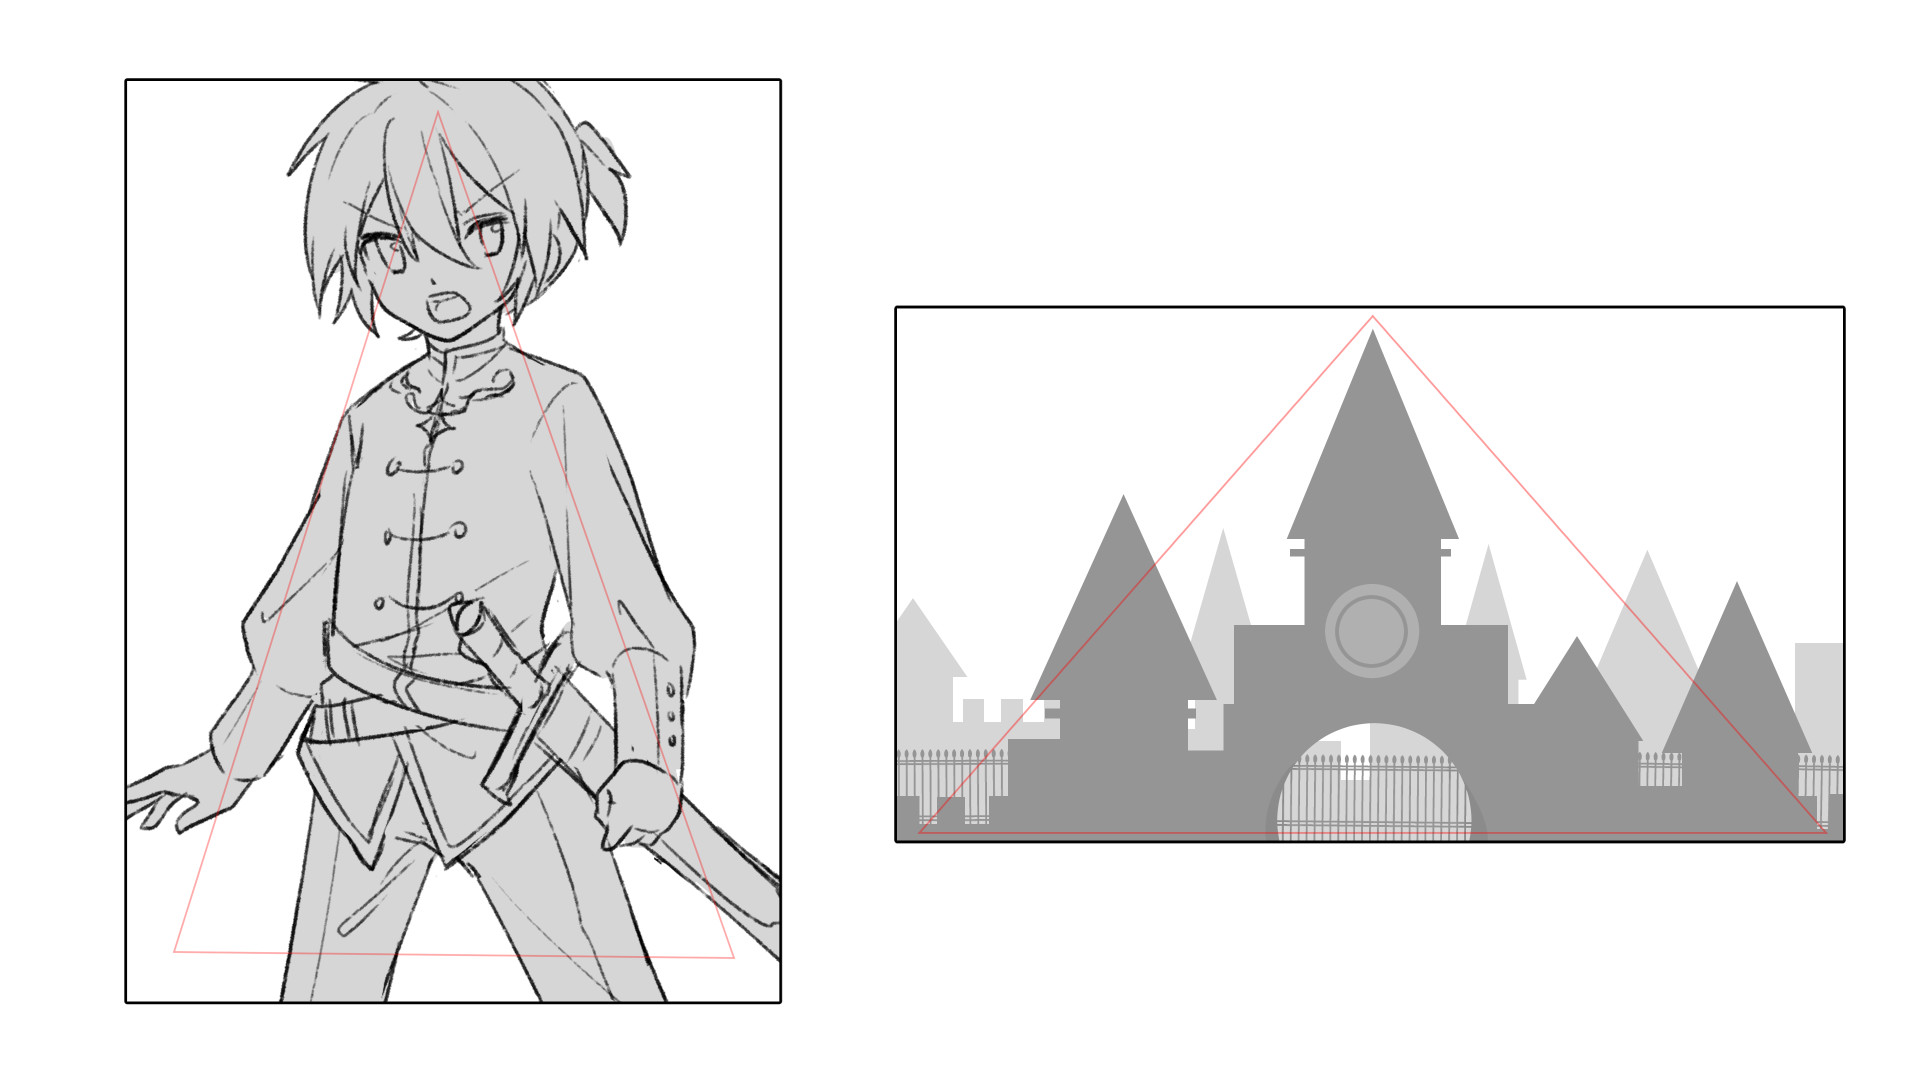 Let's Think About Composition!